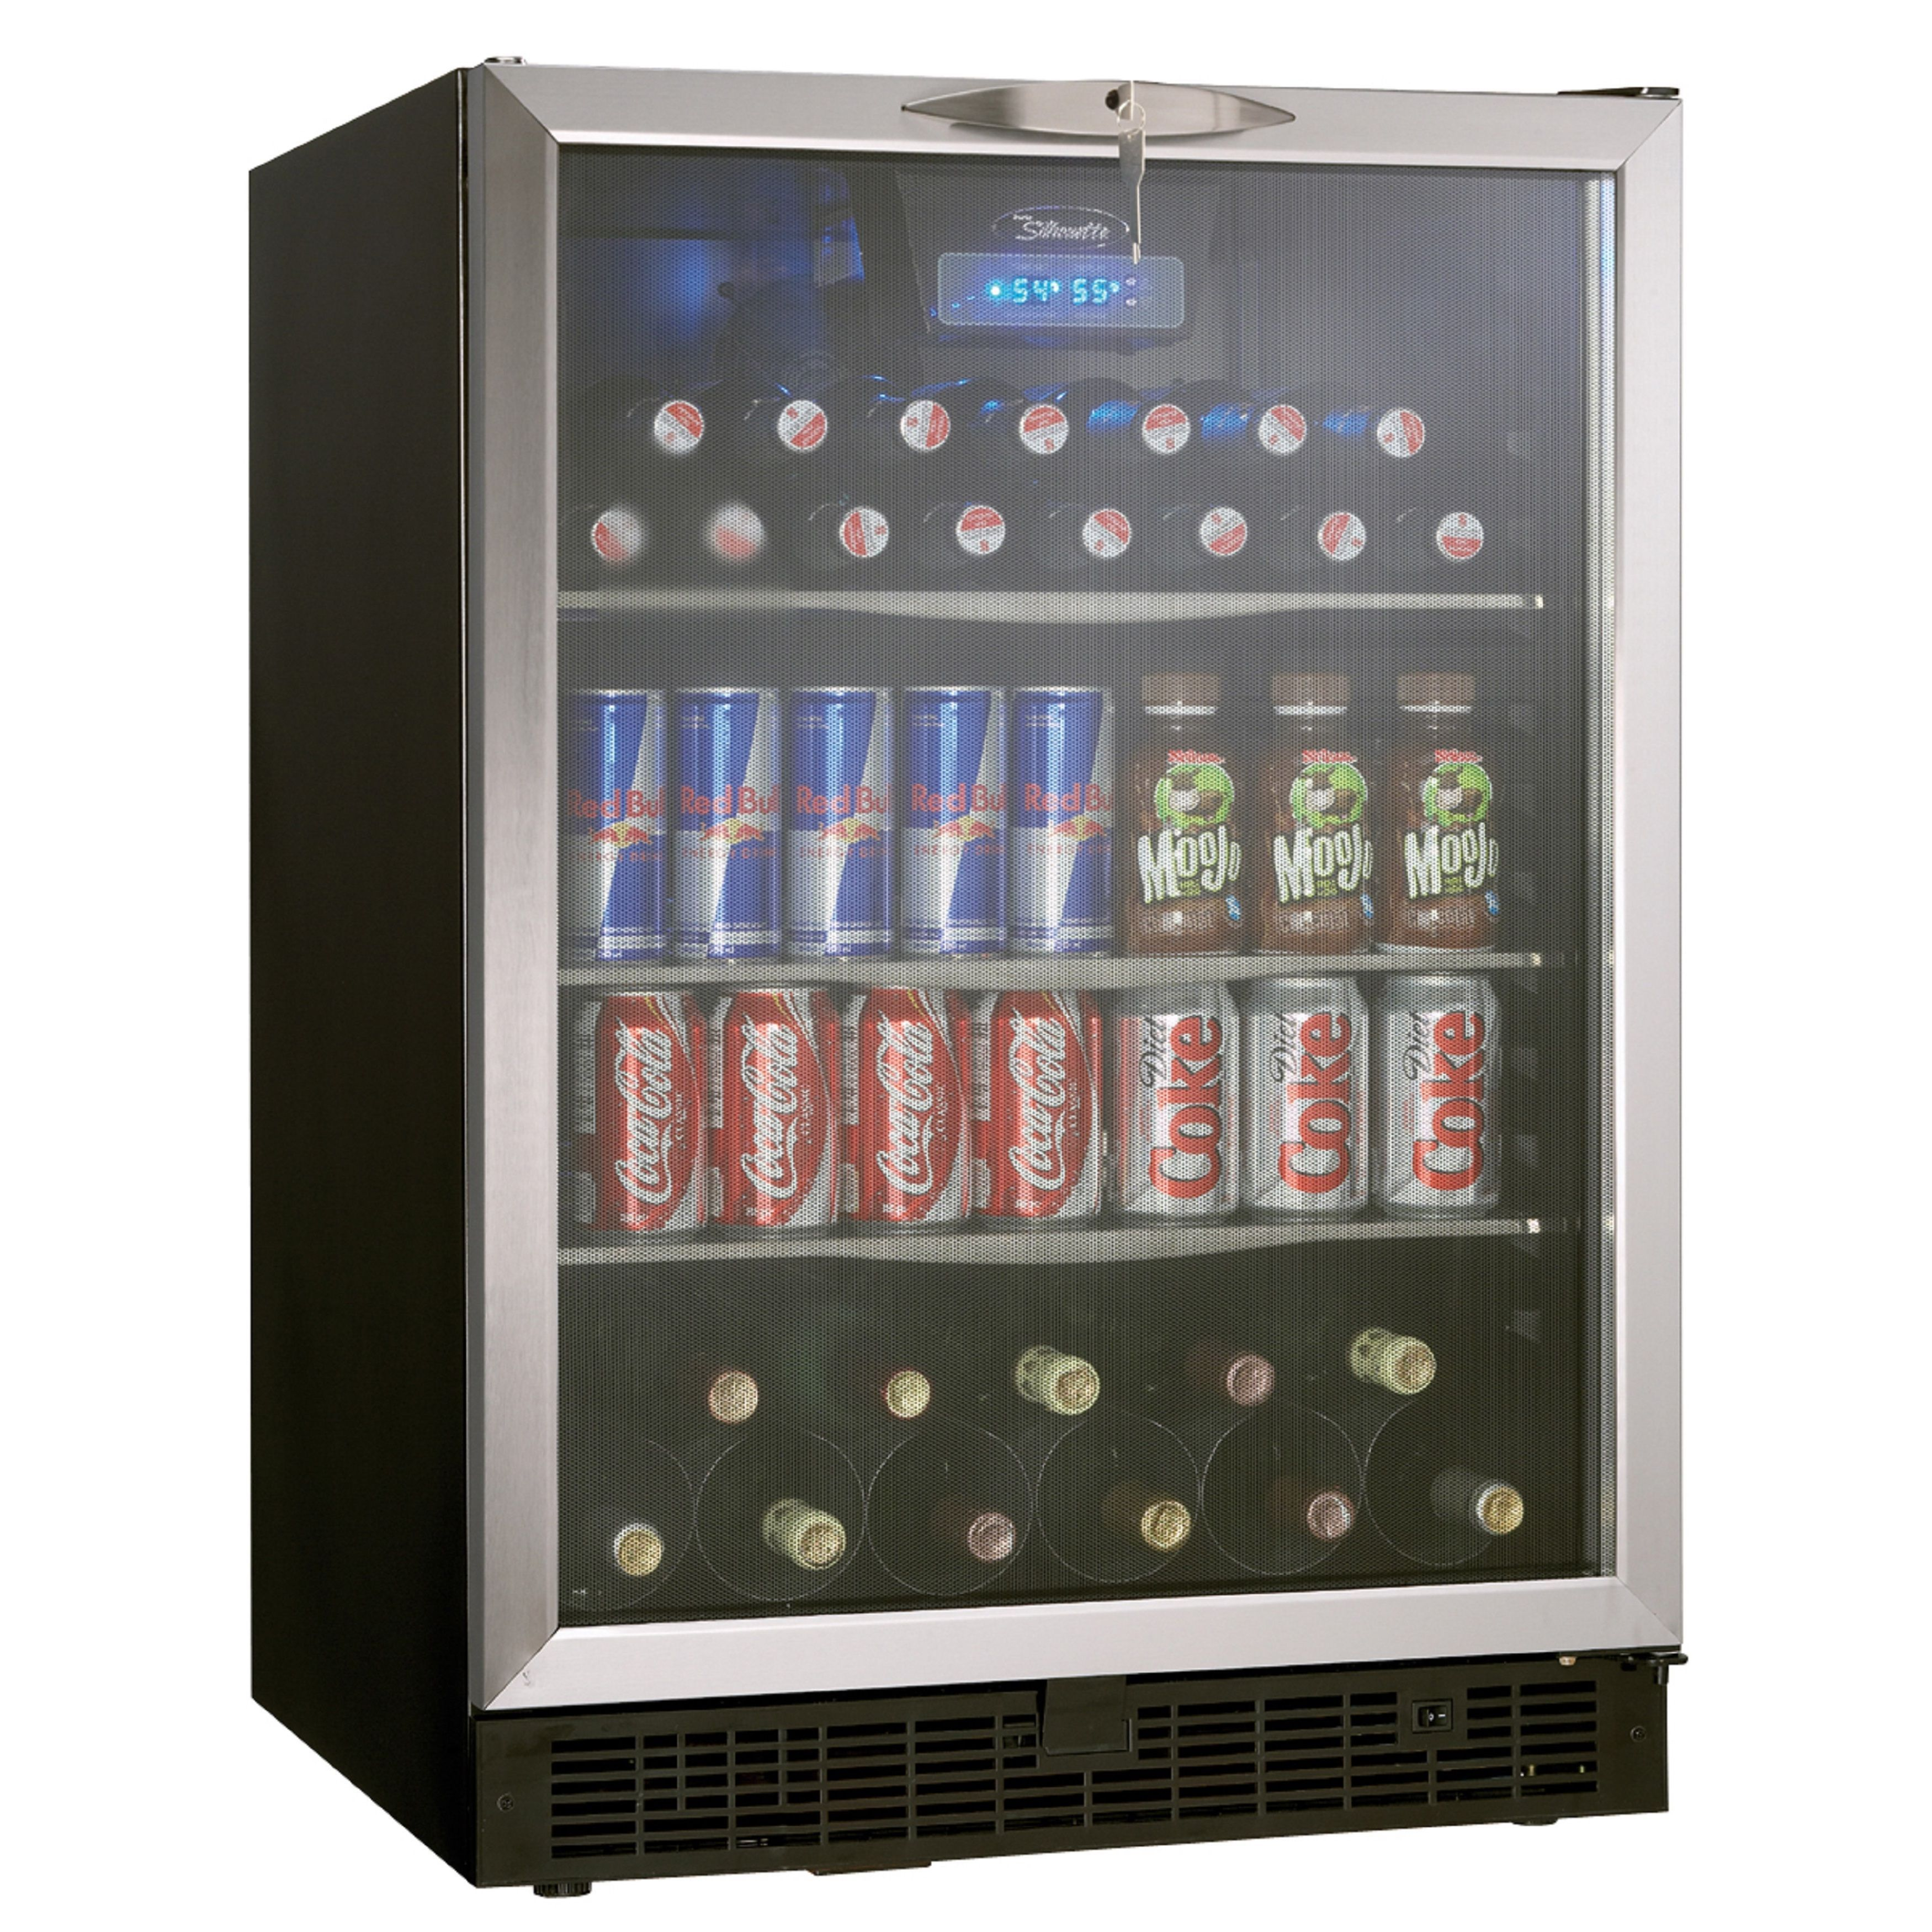 Danby DBC514BLS 5 3 cu ft Free Standing or Built in Beverage Center